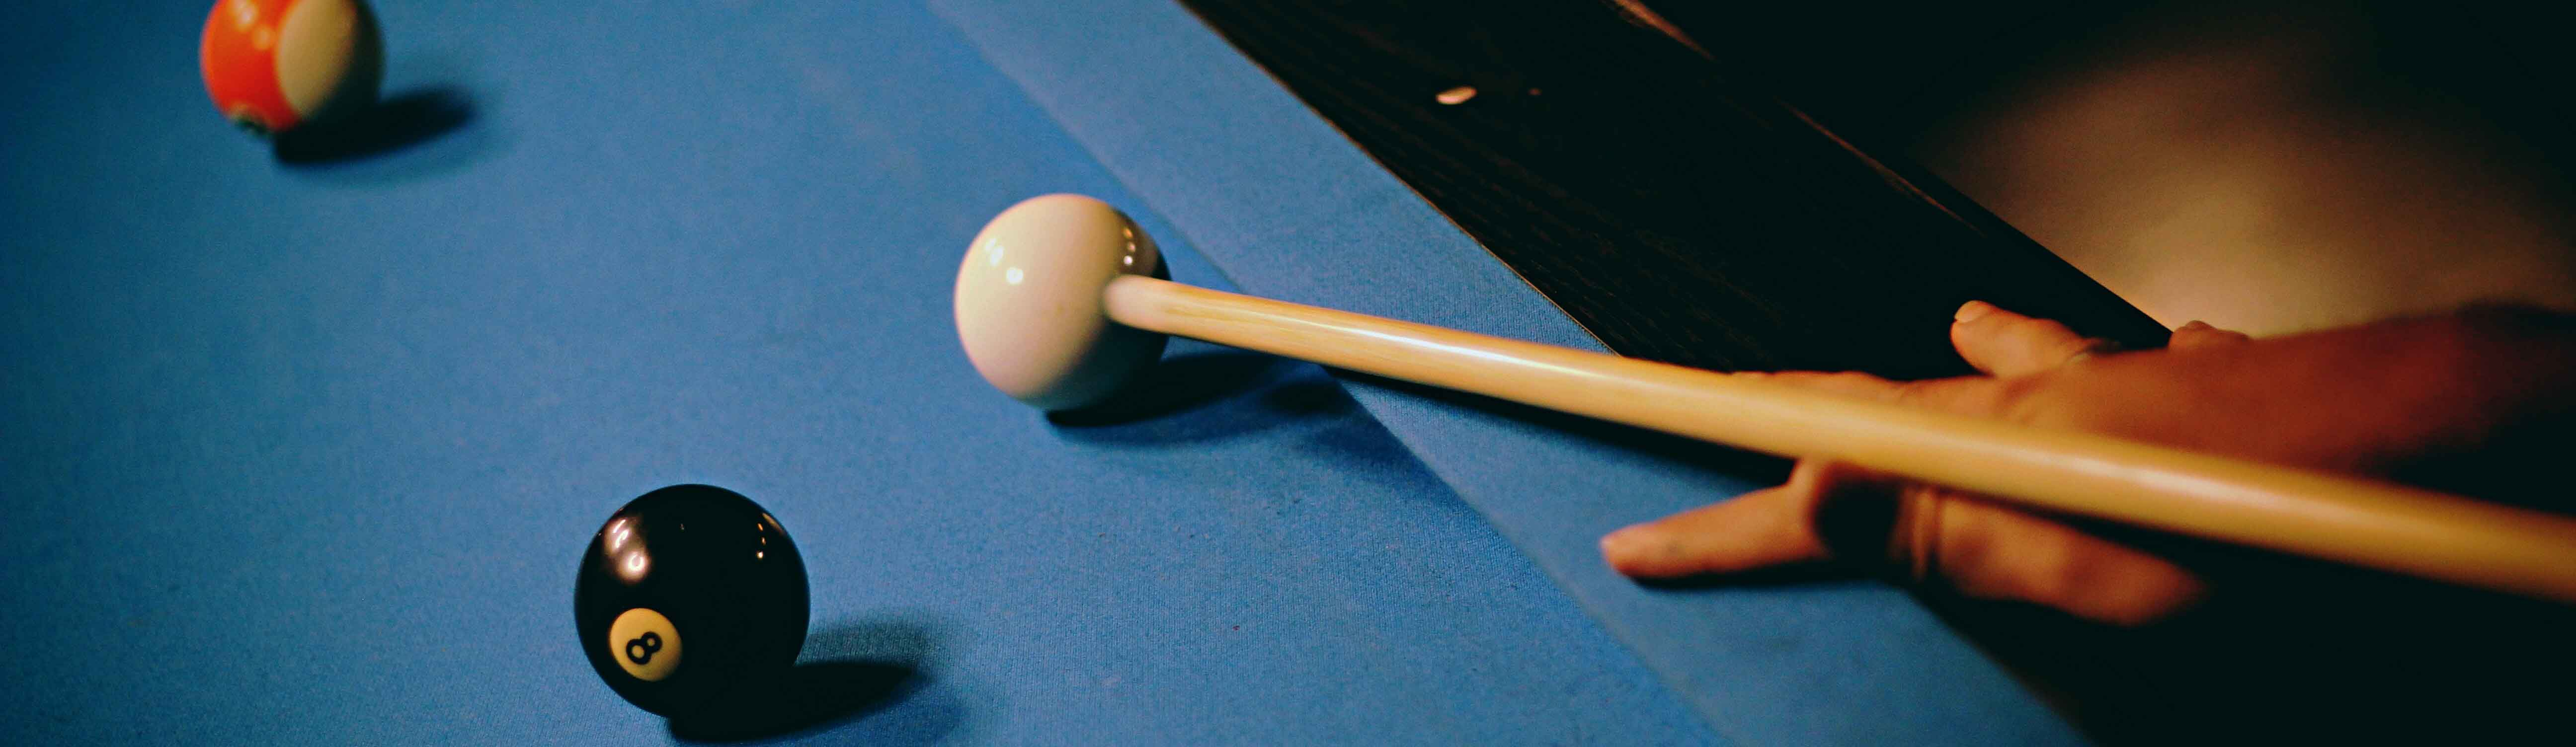 What To Know When Buying a Pool Table | Game Room Guys